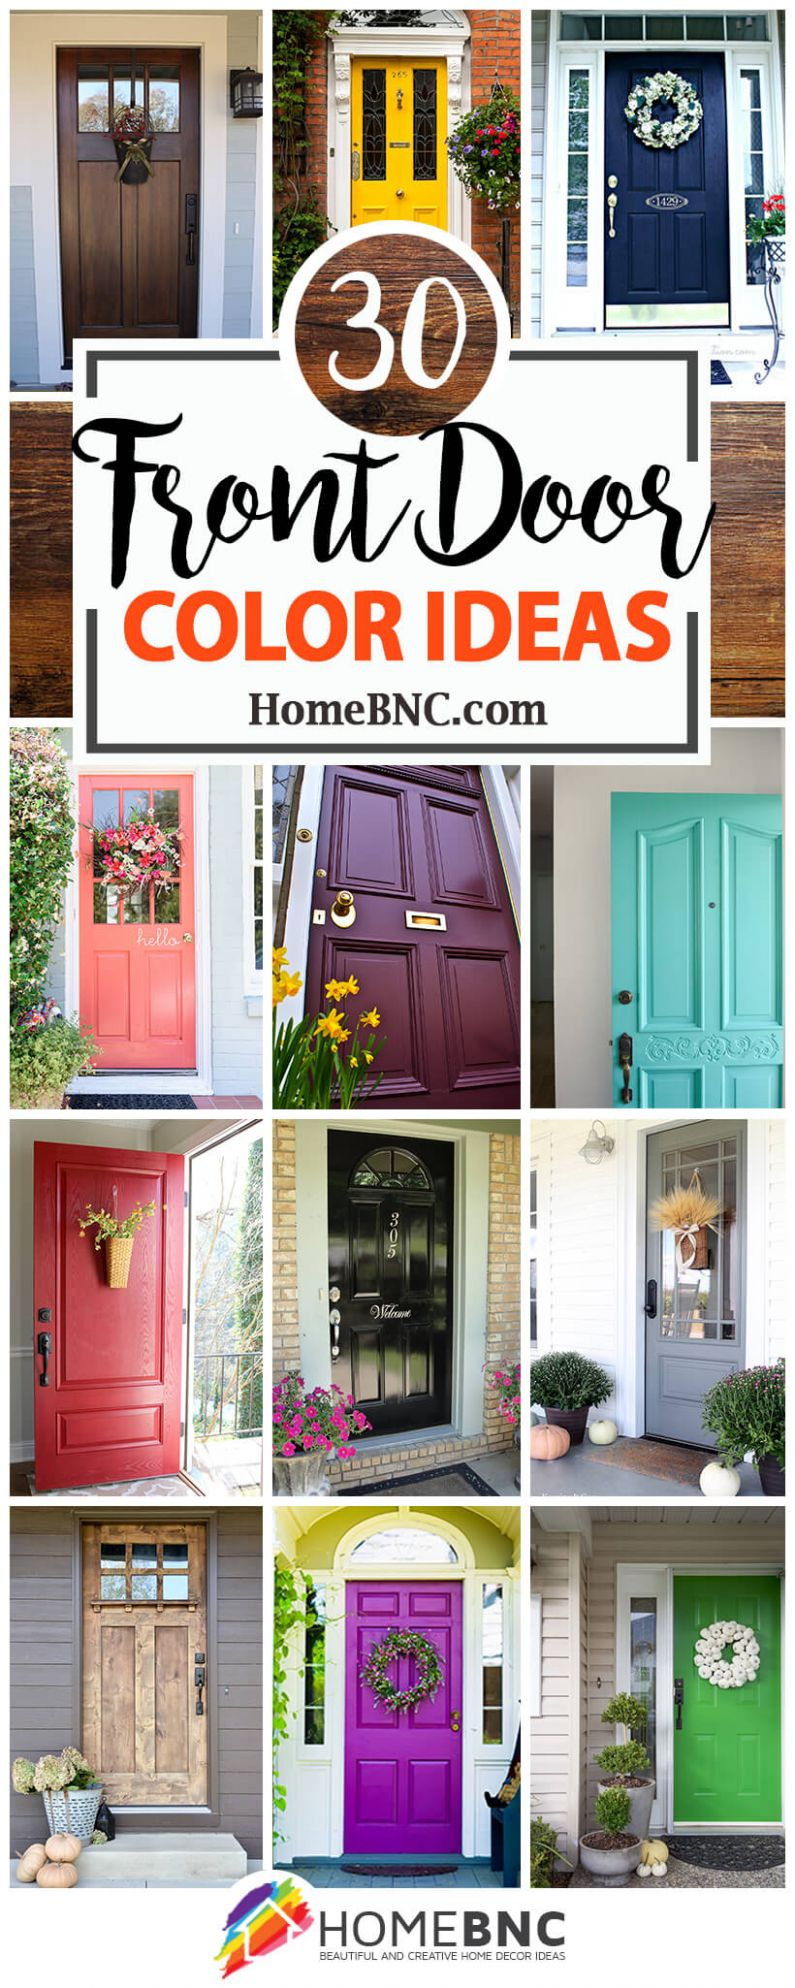 10 Best Front Door Color Ideas and Designs for 10 - window color ideas